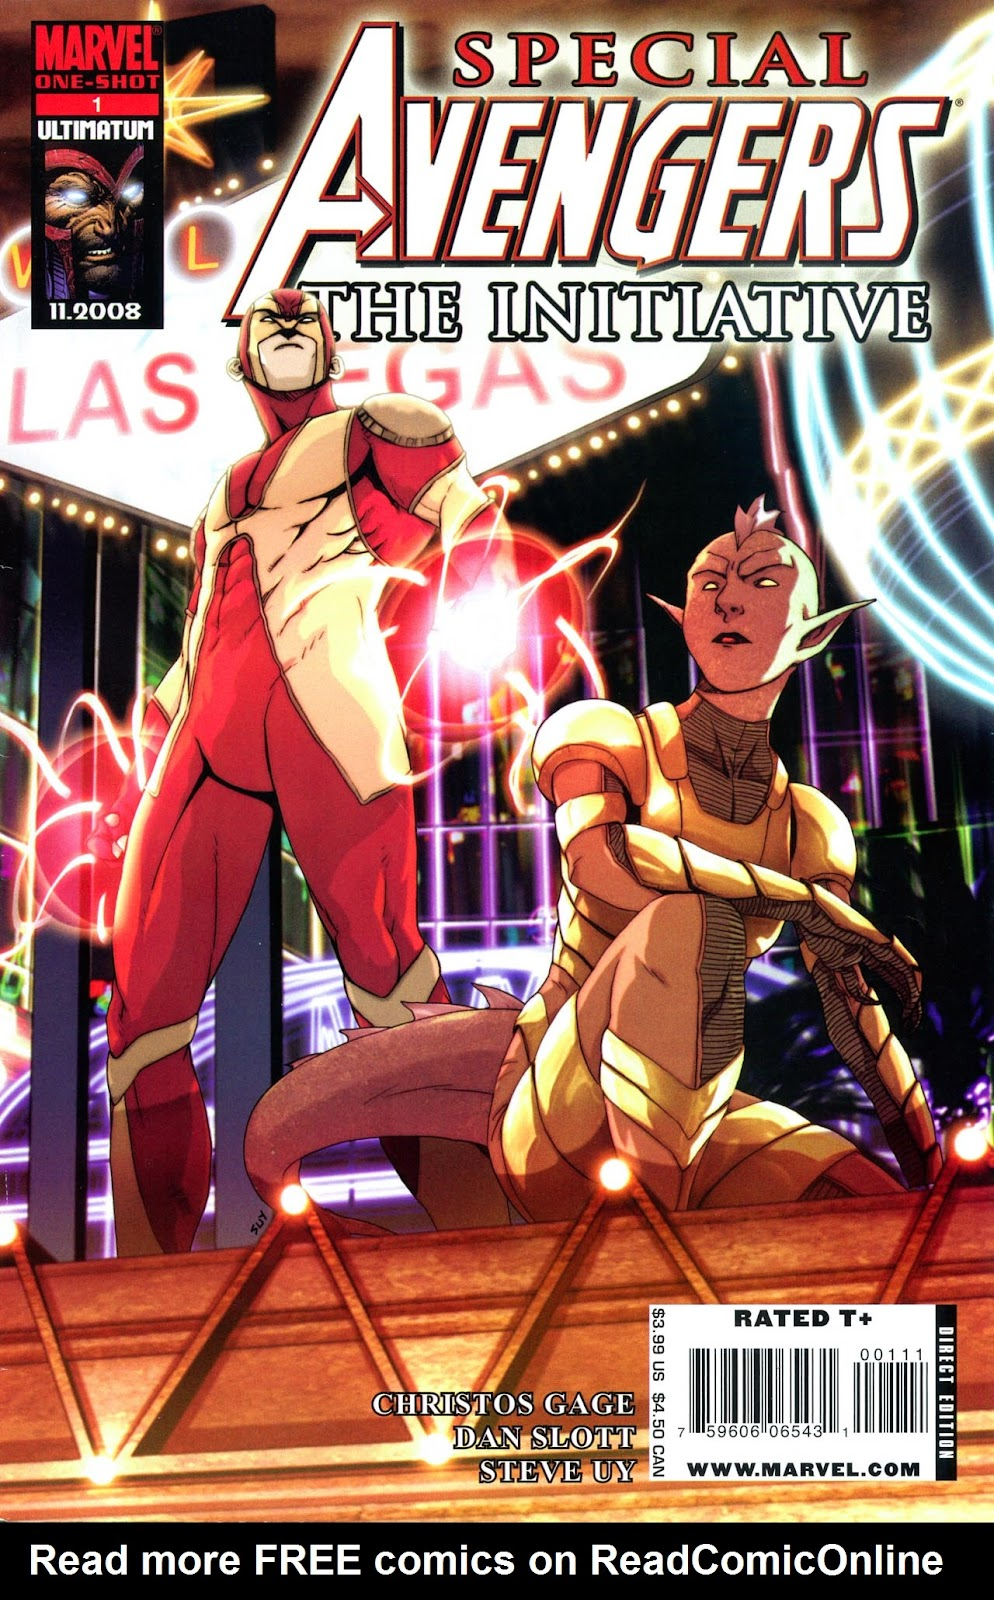 Read online Avengers: The Initiative comic -  Issue # _Special 1 - 1